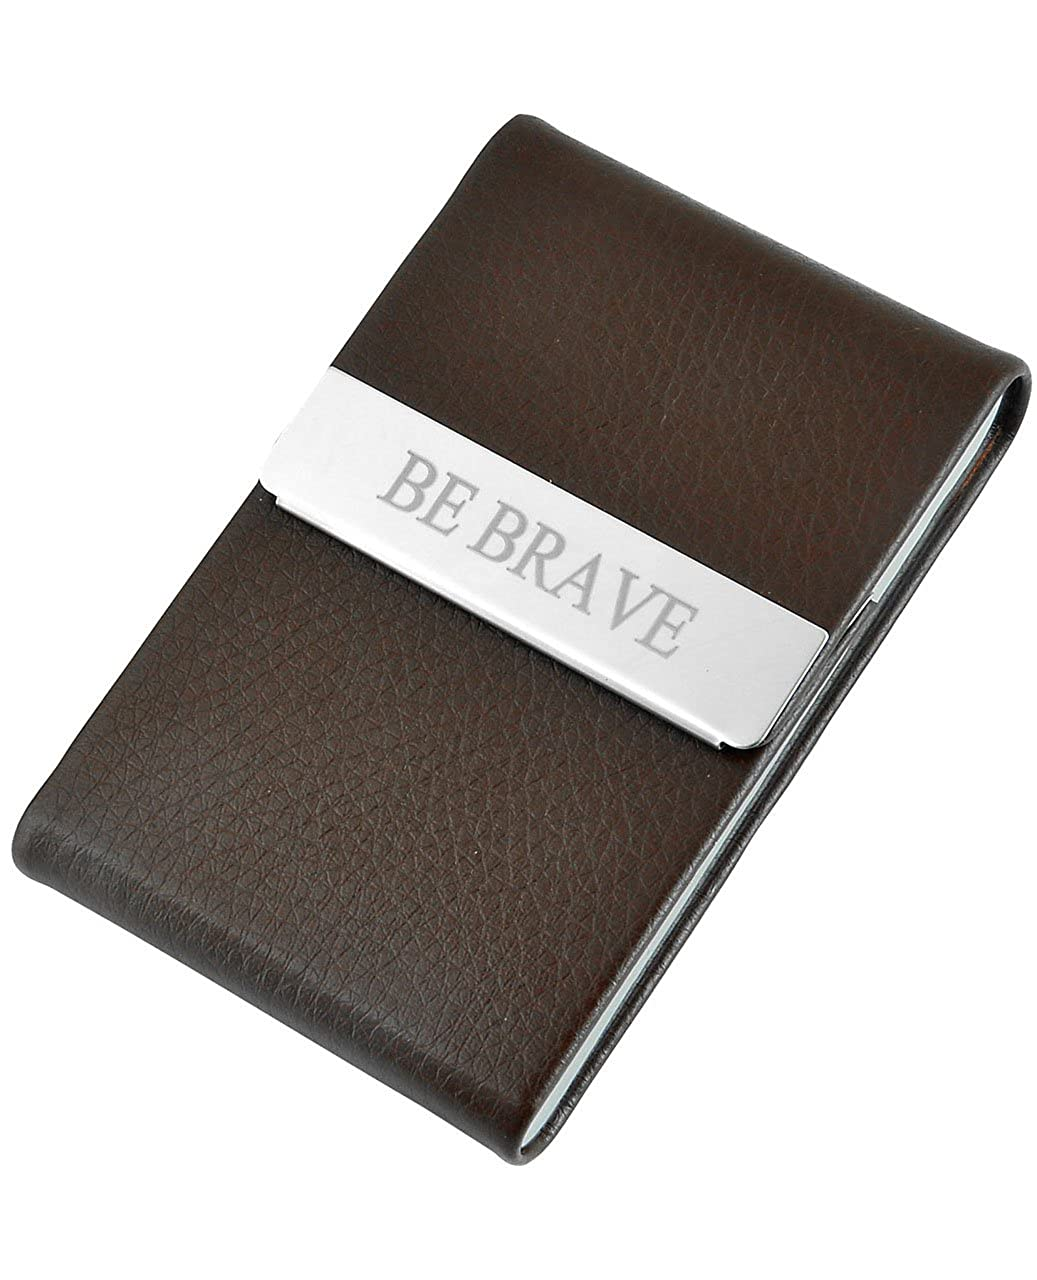 Ayliss offer Personalized Engraving service Bussiness Card Holder Top Quality Stainless Steel Leather Magnetic Shut AAUS27901